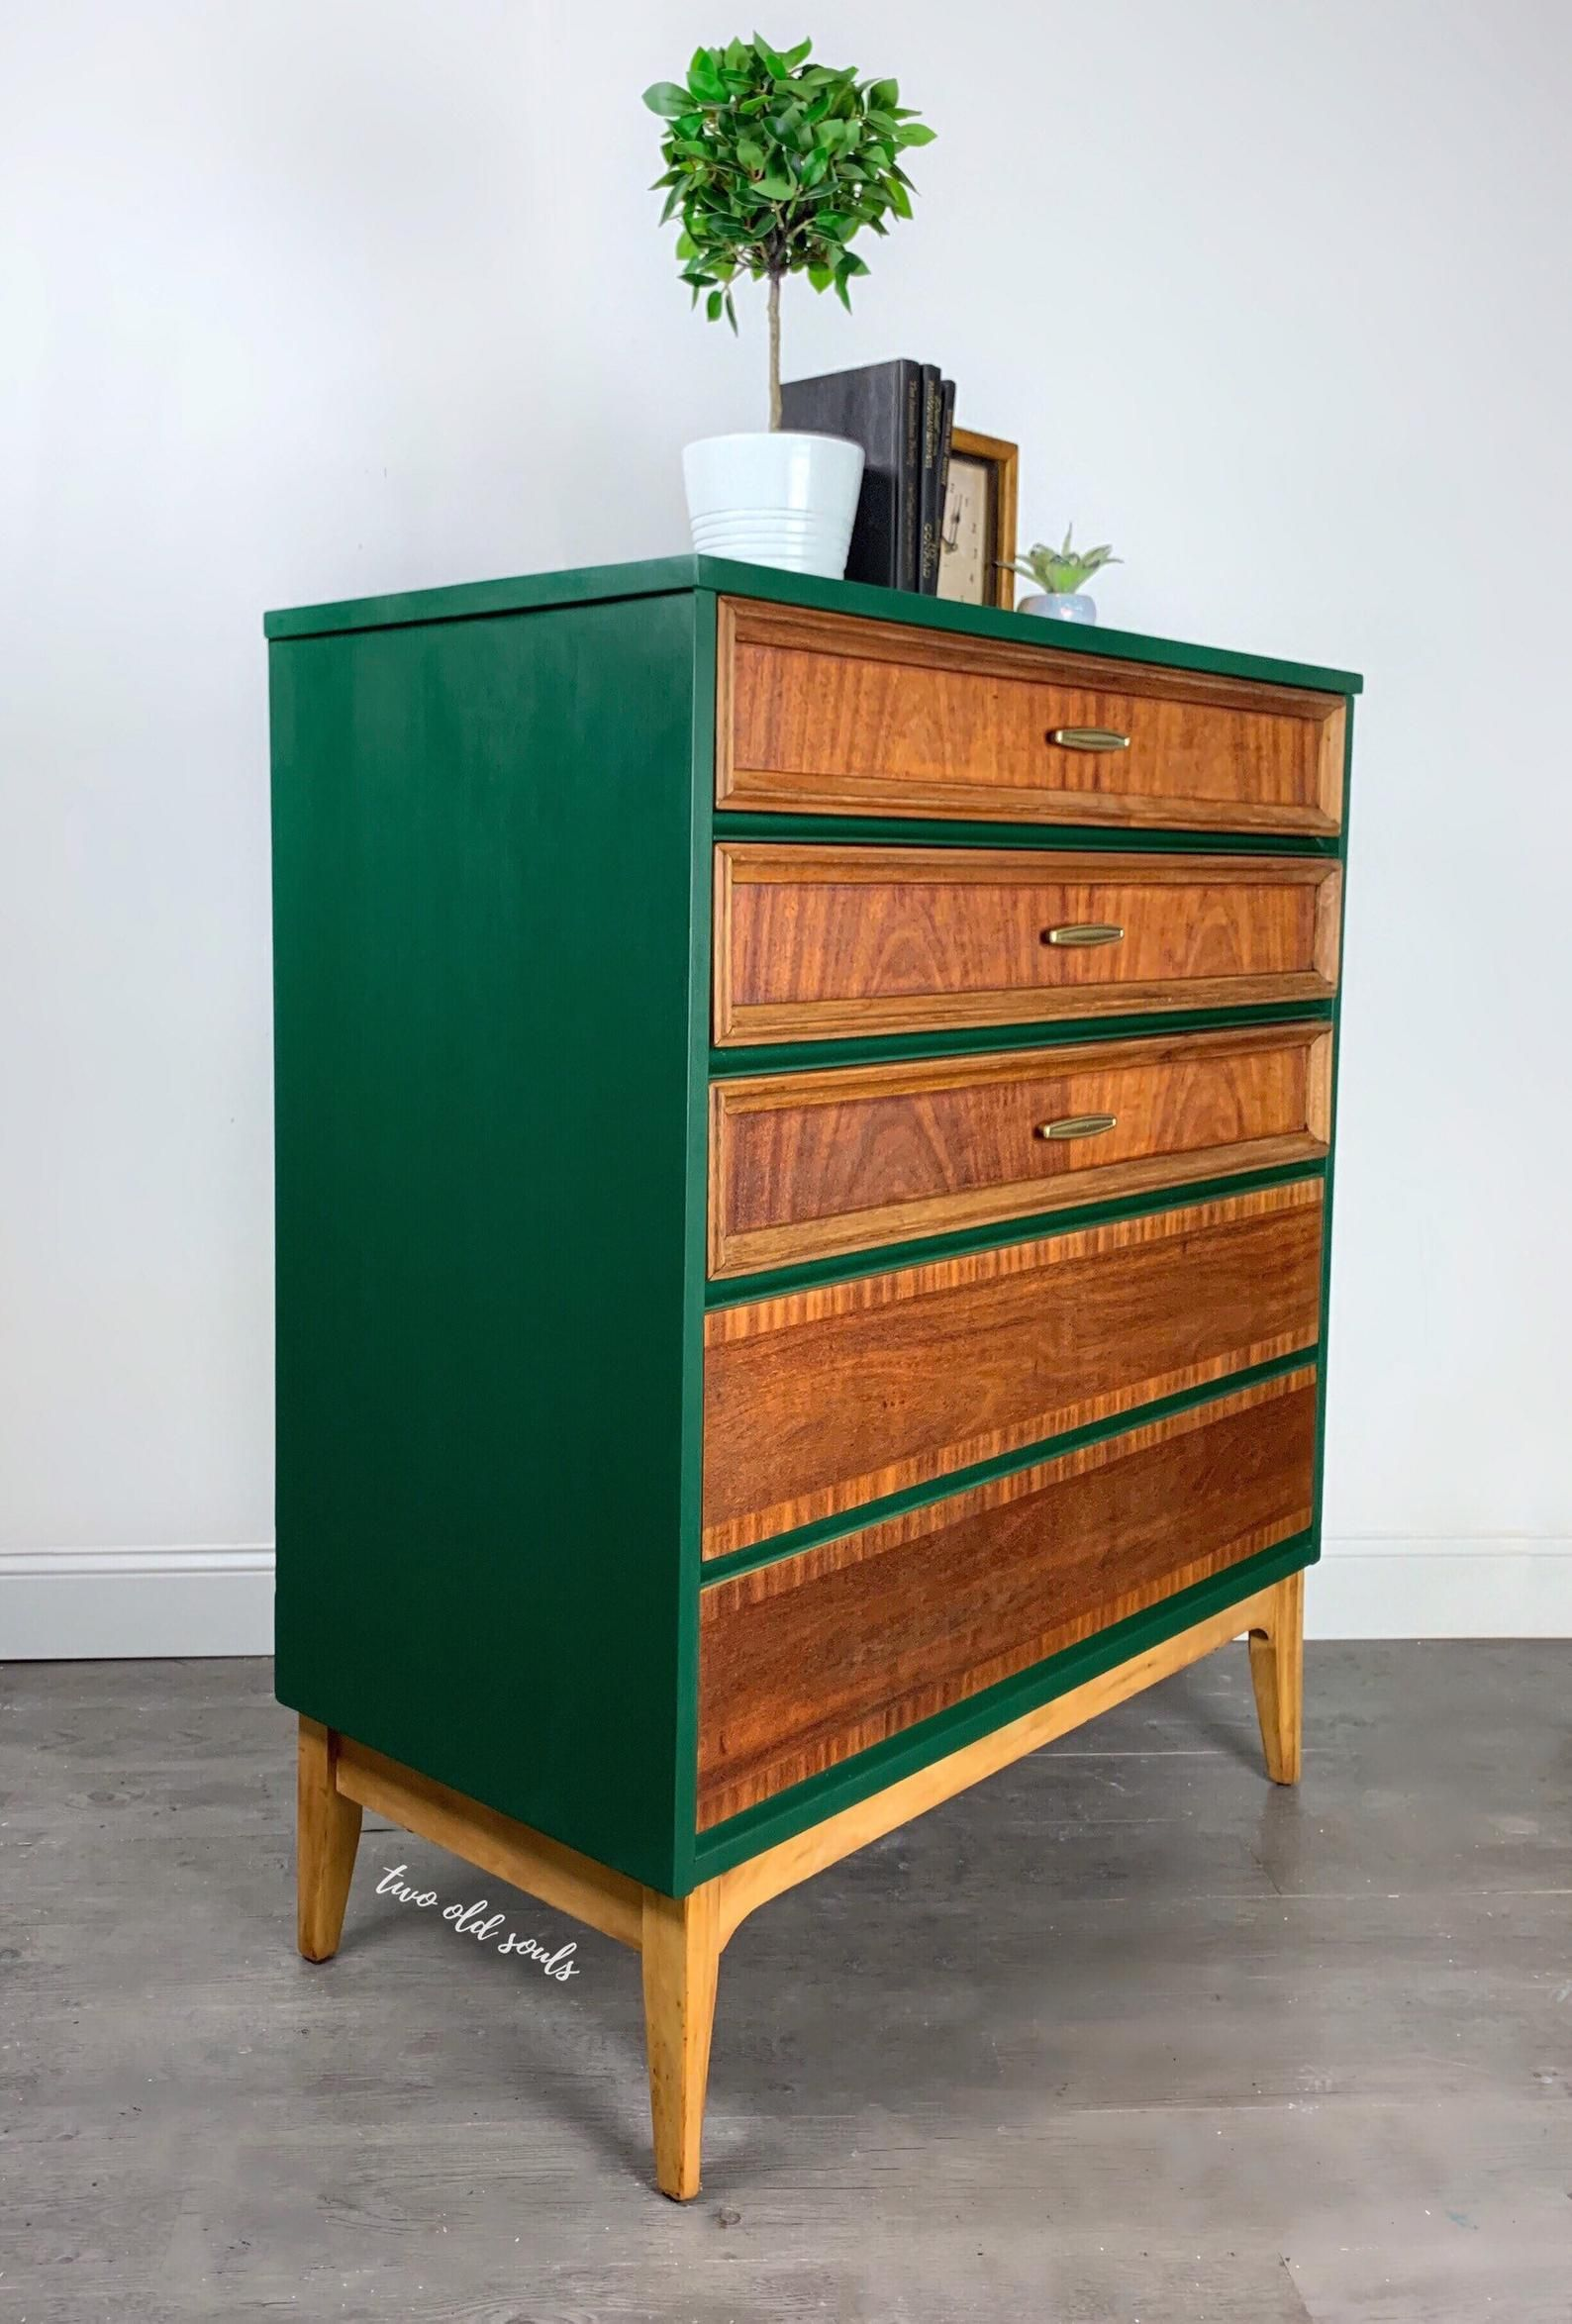 Dixie Highboy Two Toned Emerald Green And 5 Refinished Wood Etsy Green Painted Furniture Green Furniture Green And Green Furniture [ 2348 x 1588 Pixel ]